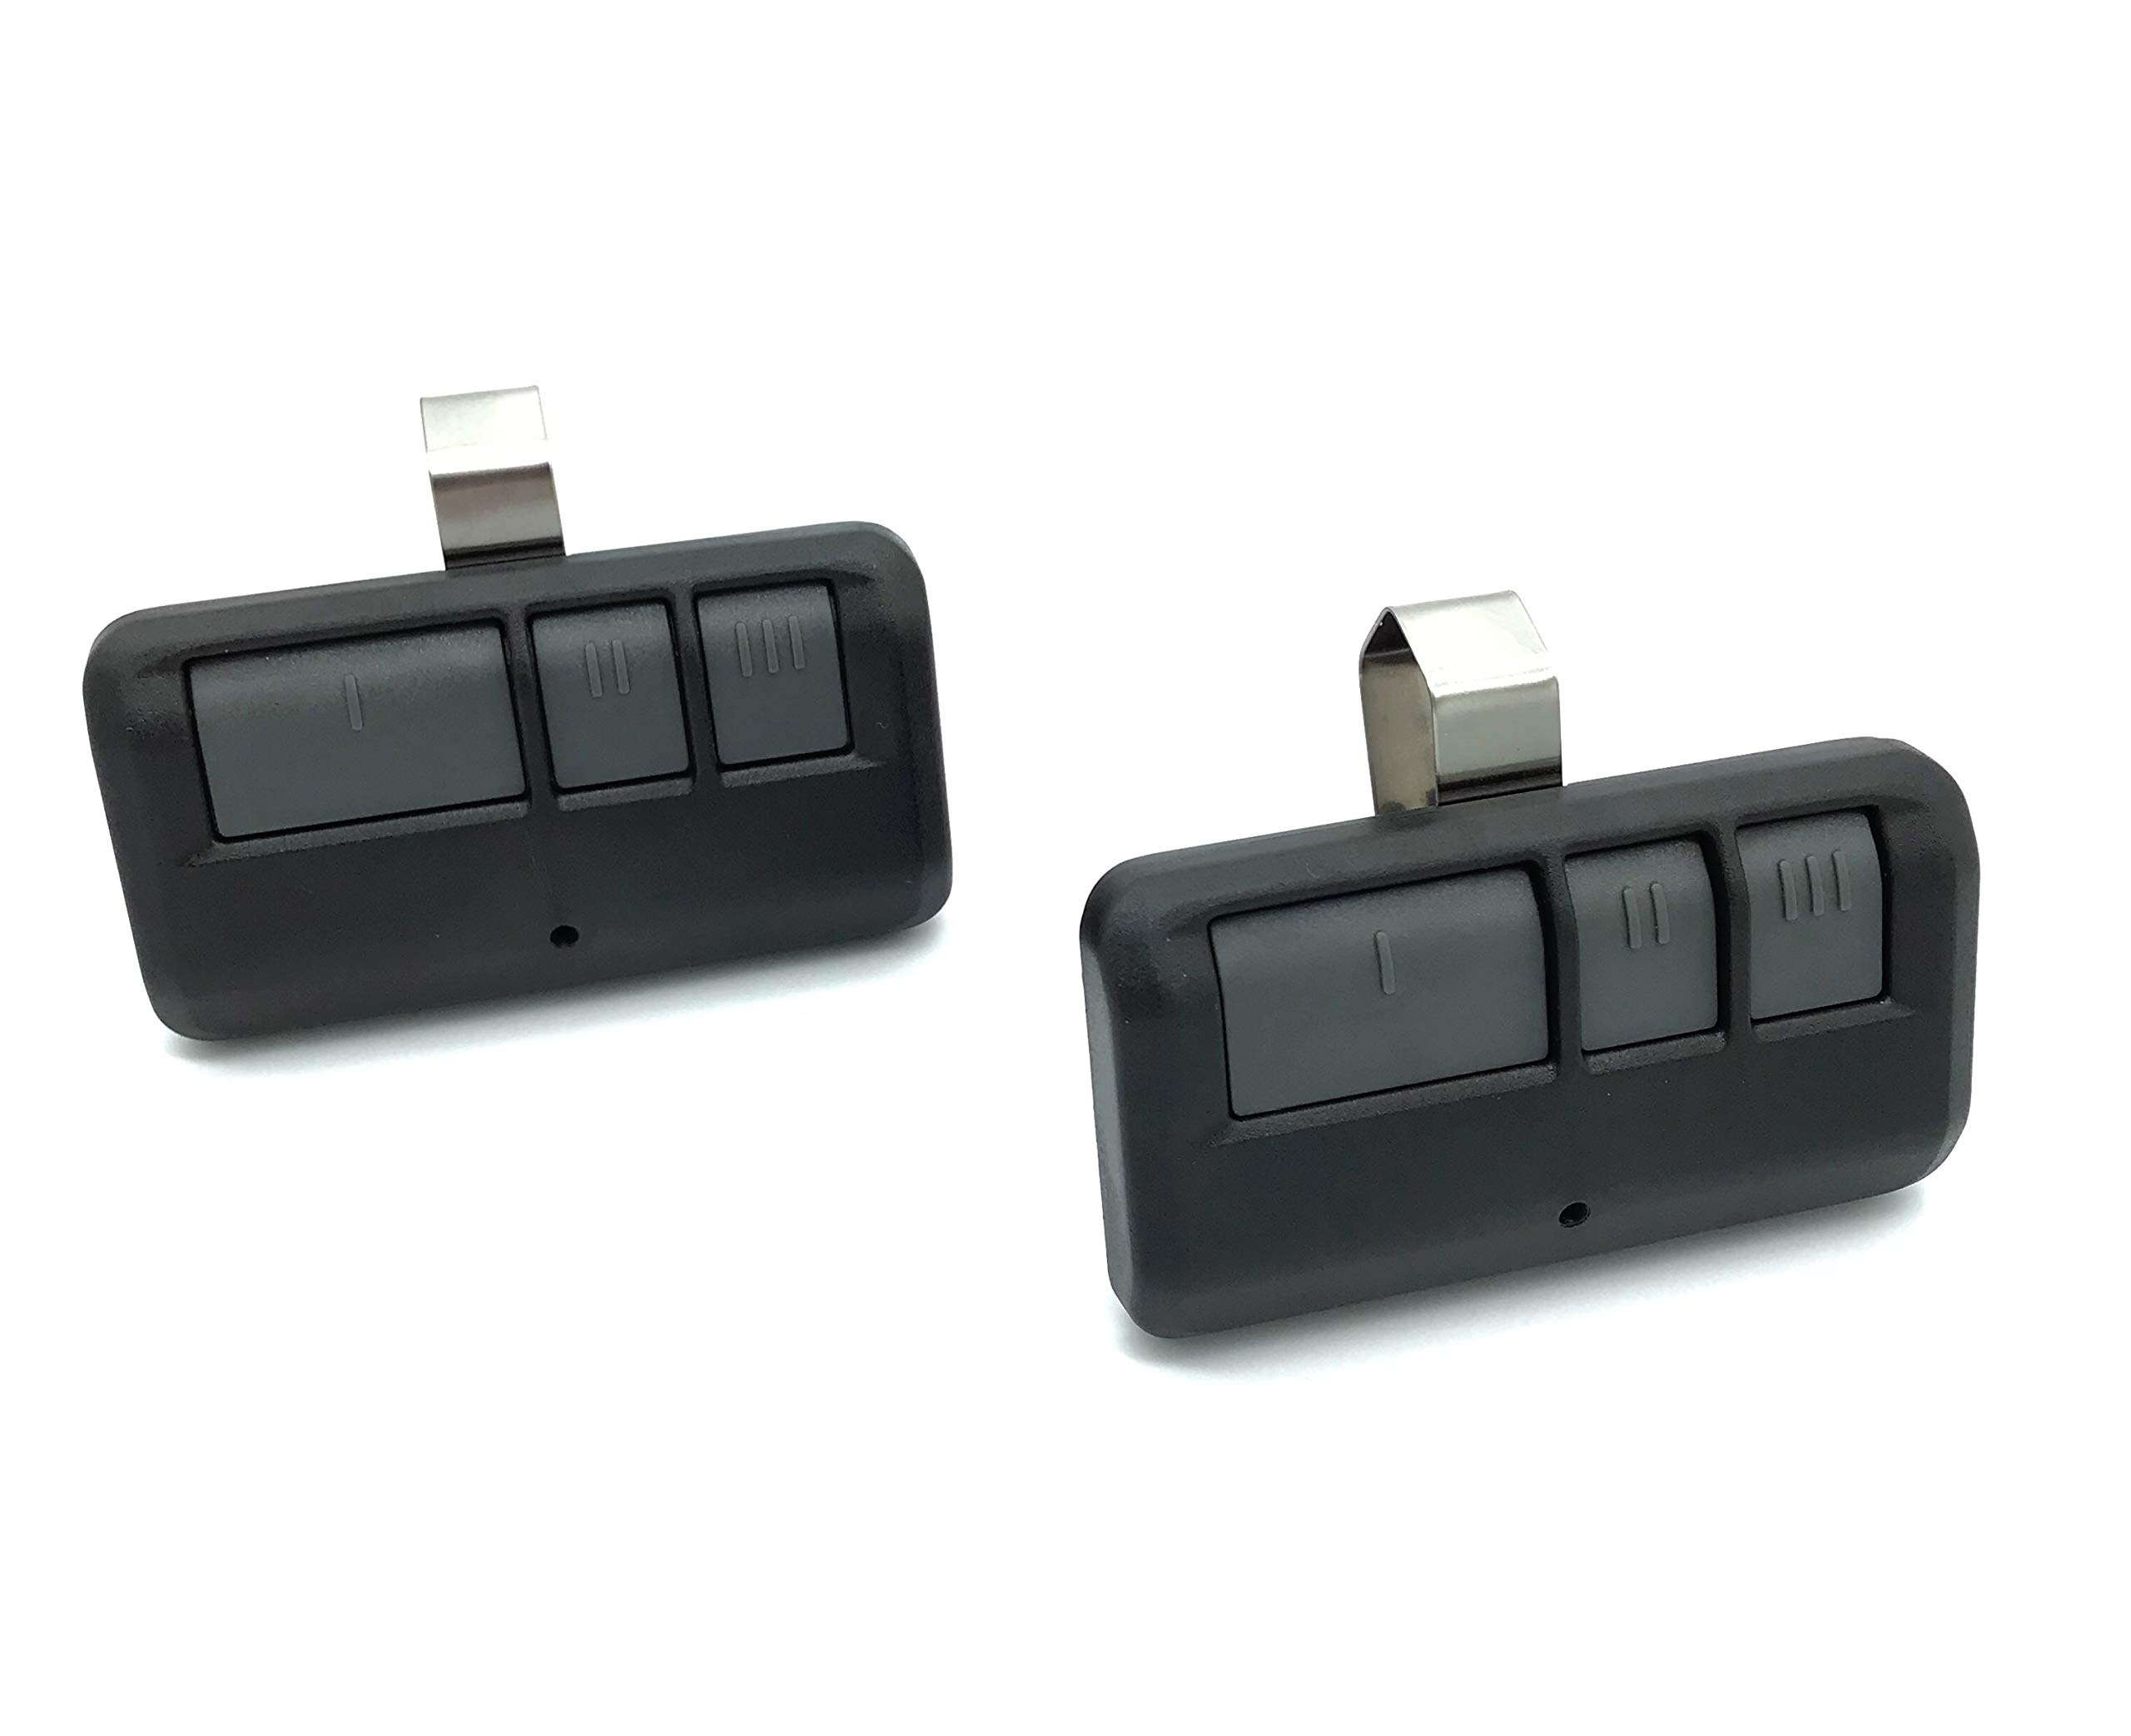 2 Pack for LiftMaster 893MAX Visor Style Garage Door Opener Remote Transmitter 81LM 371LM 373LM 891LM 893LM 971LM 973LM by Gate1Access